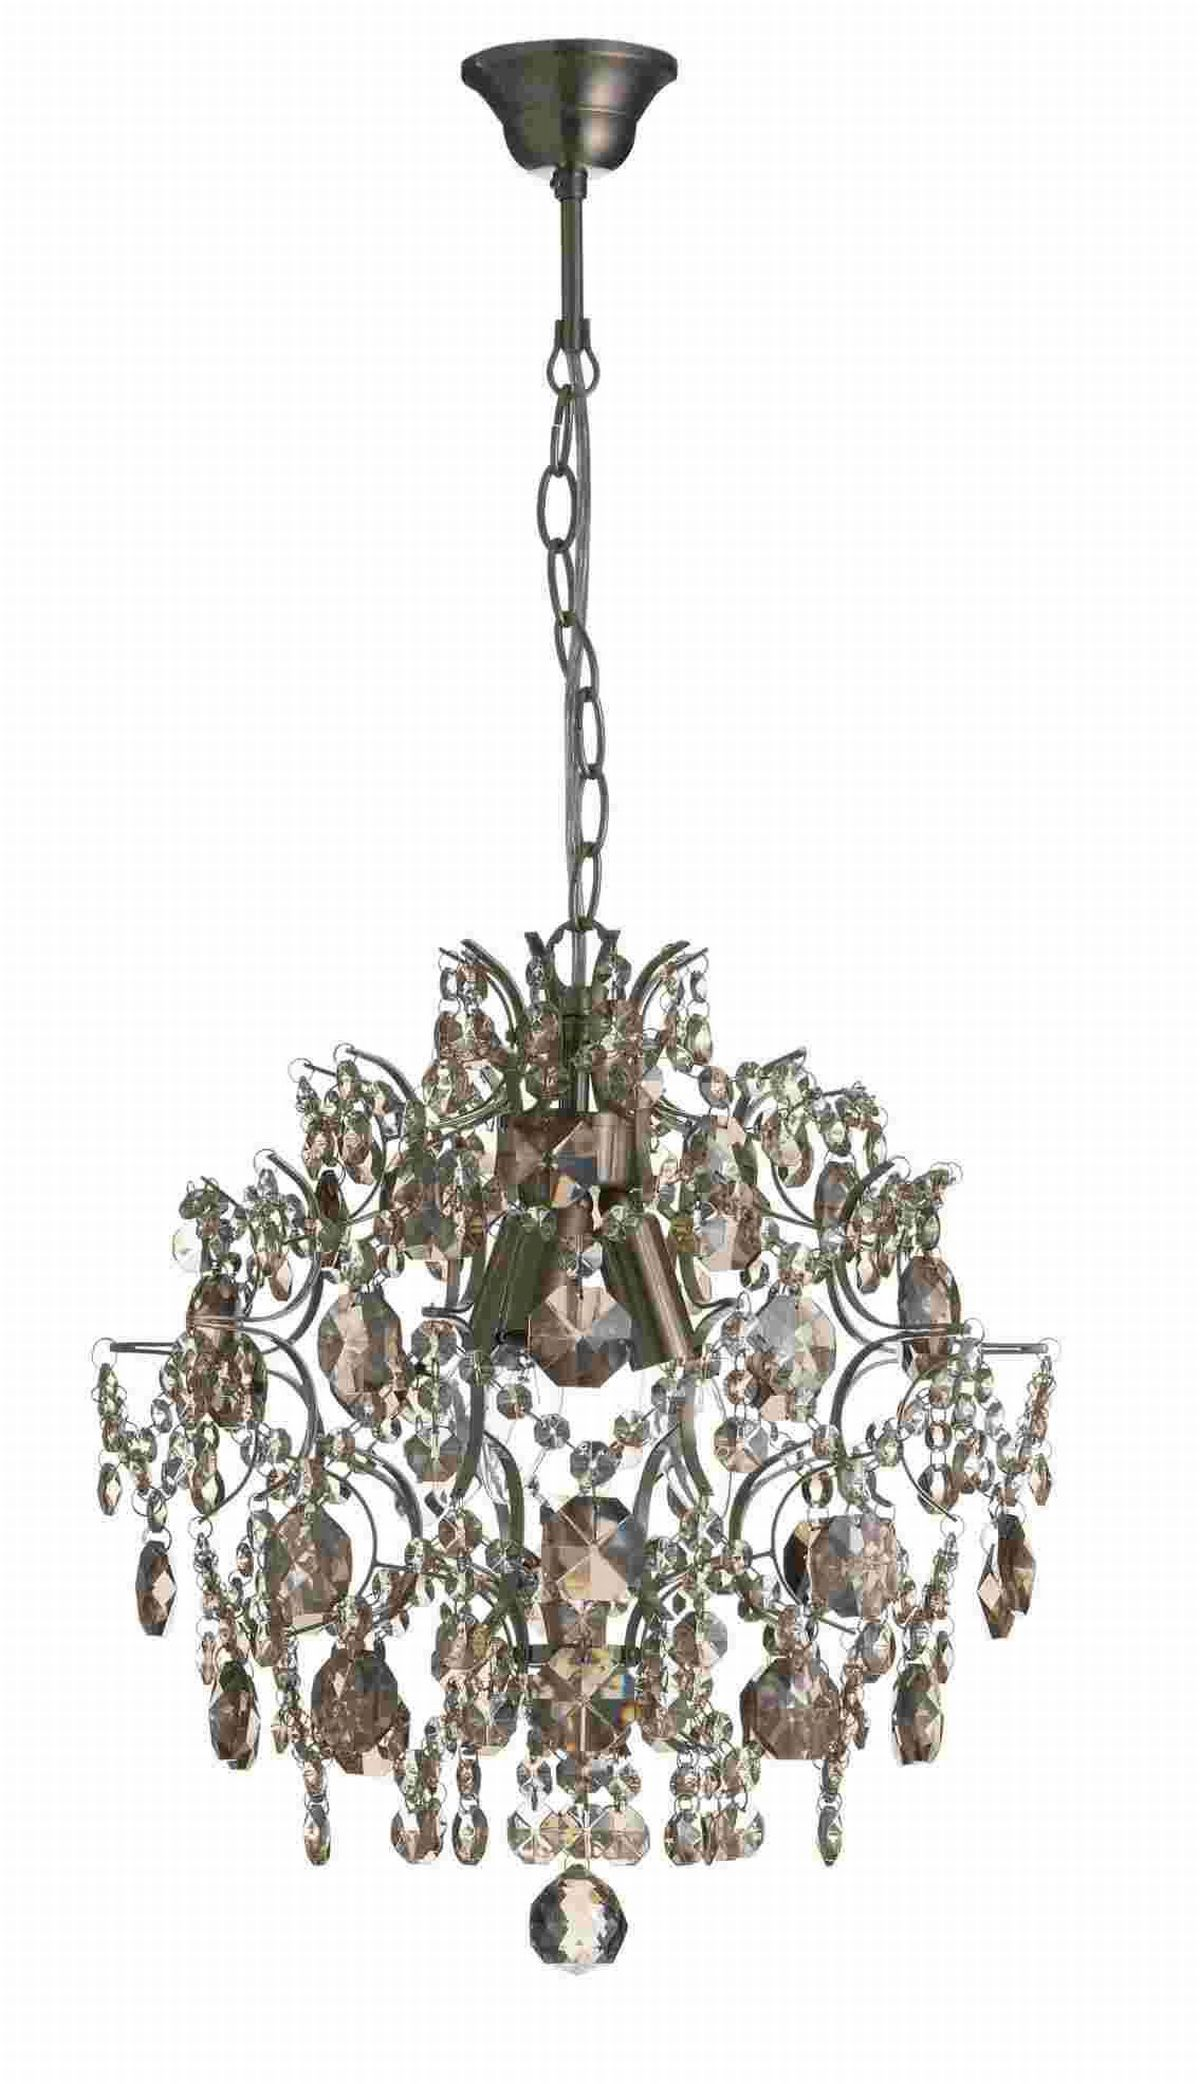 Chandeliers to suit your home chic and contemporary designs for chandeliers to suit your home chic and contemporary designs for every household dorset echo mozeypictures Image collections